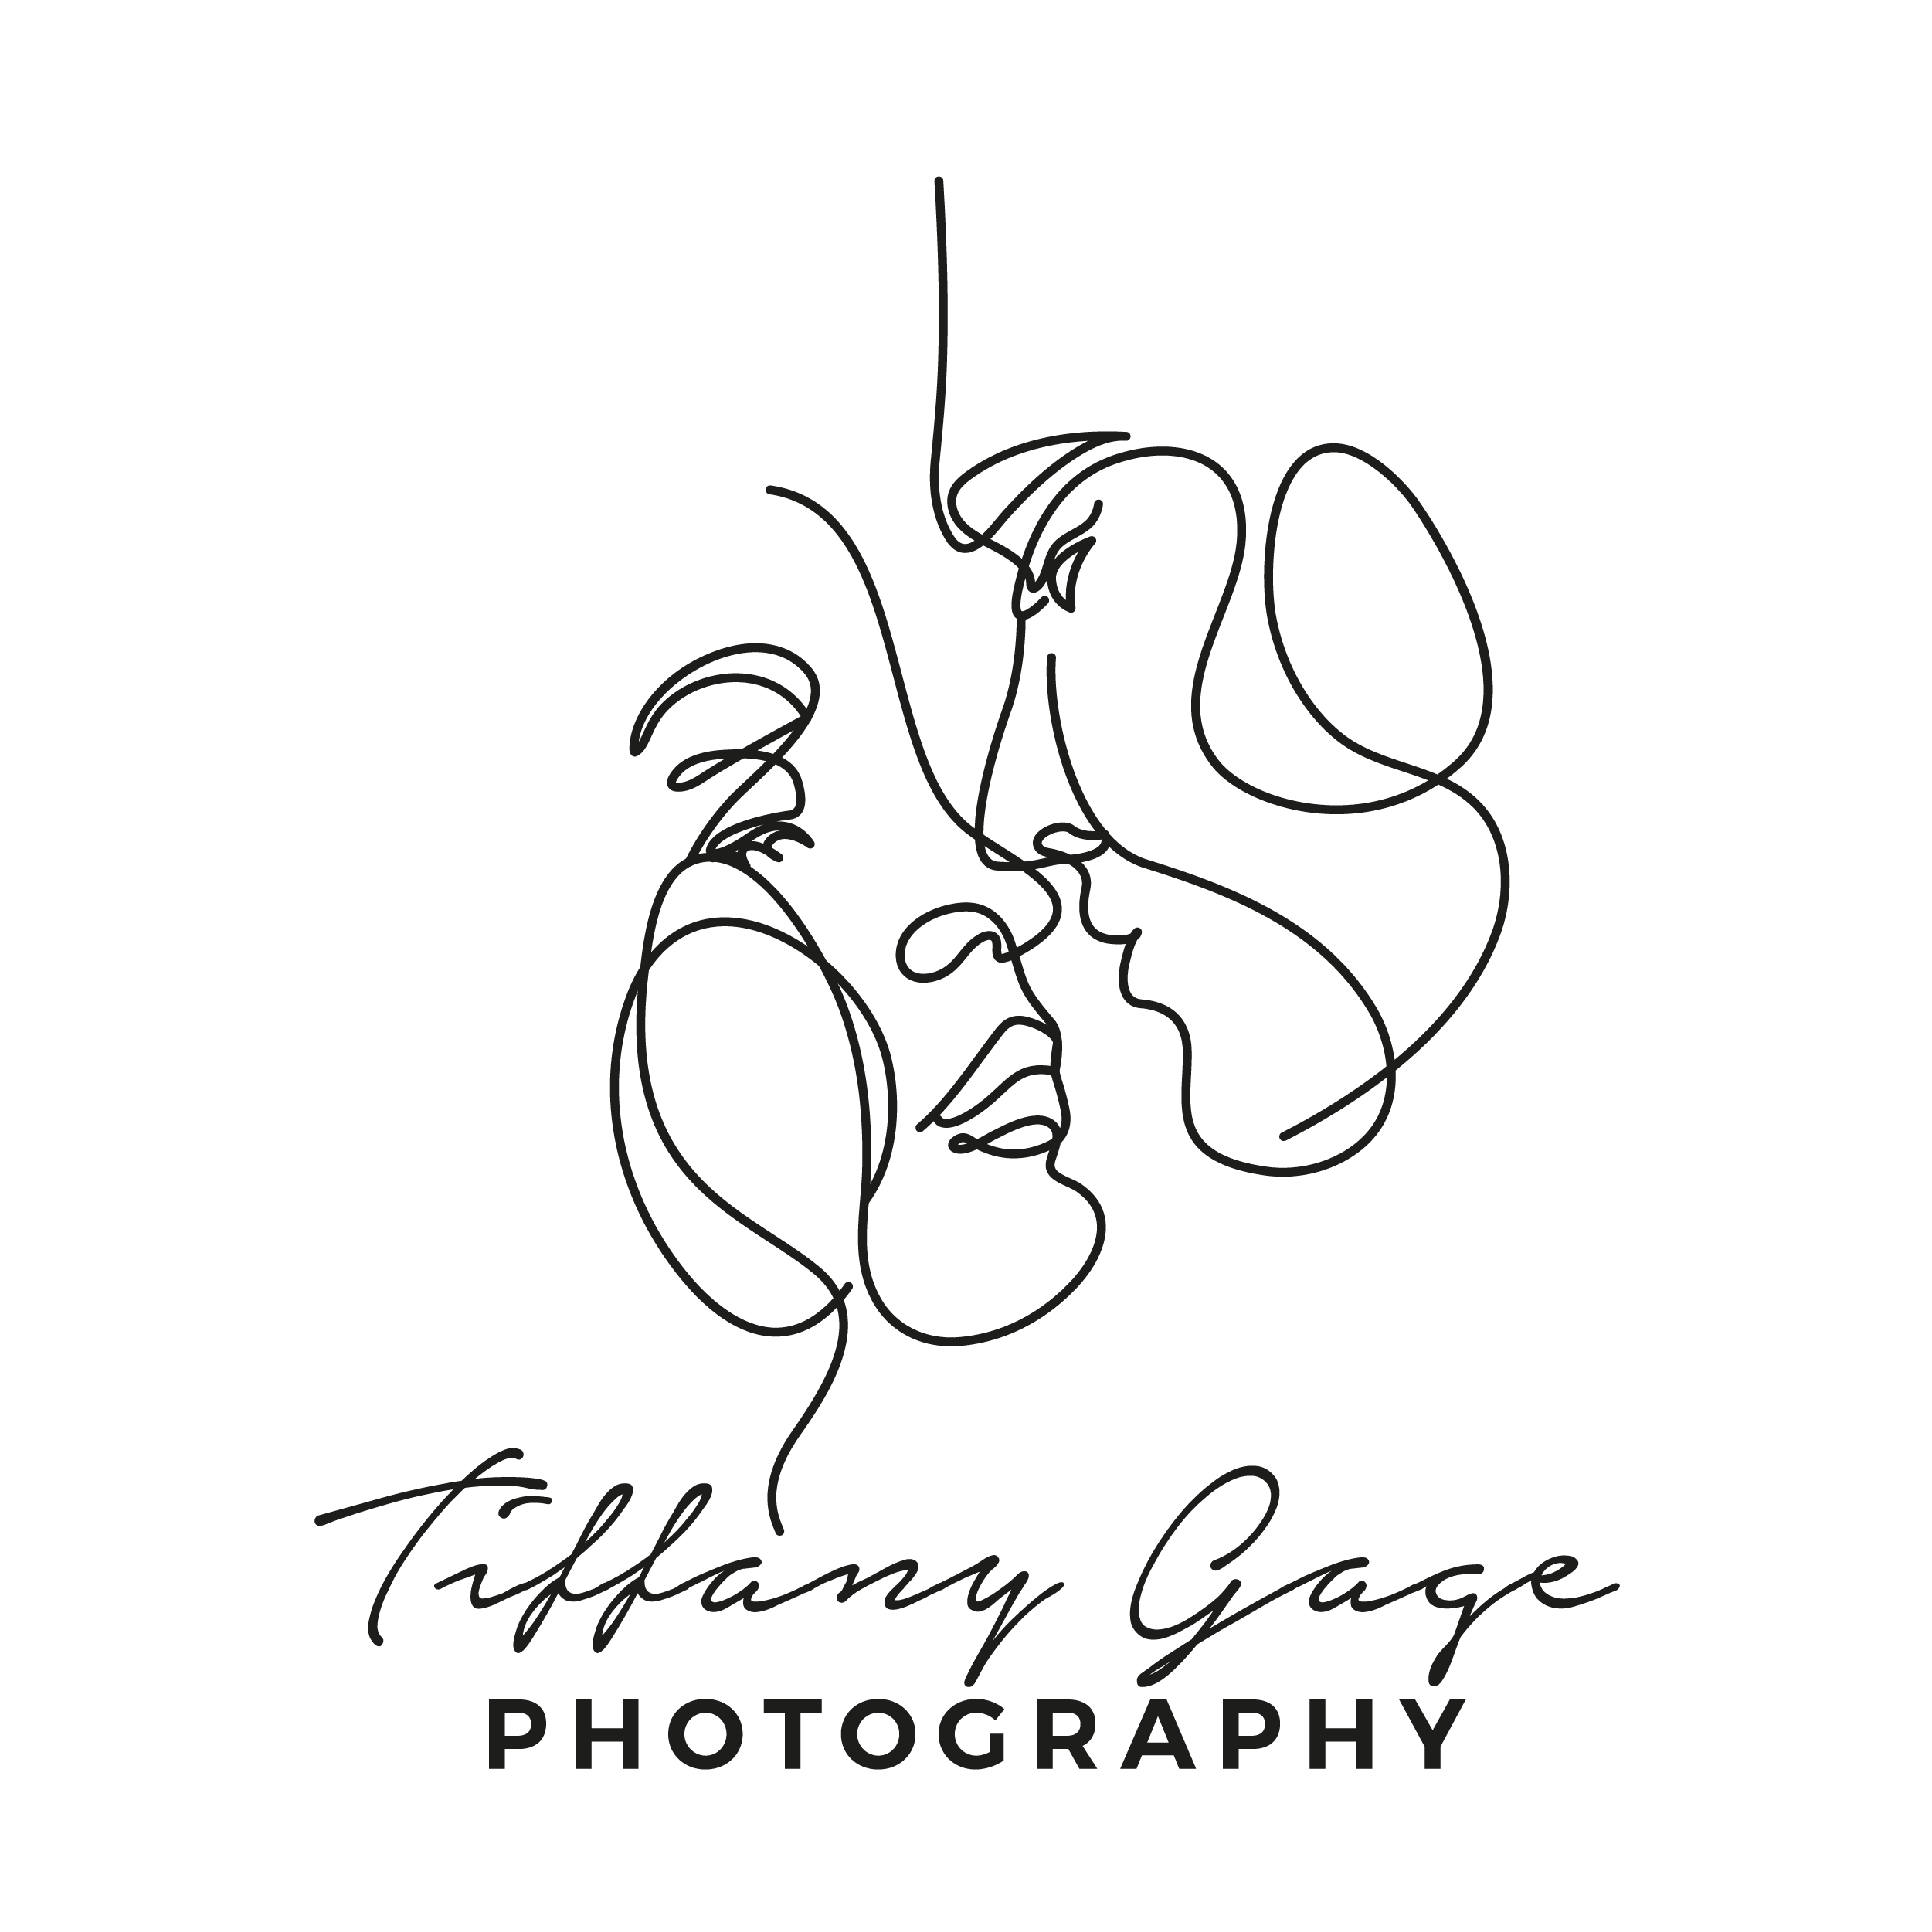 Tiffany Gage Photography